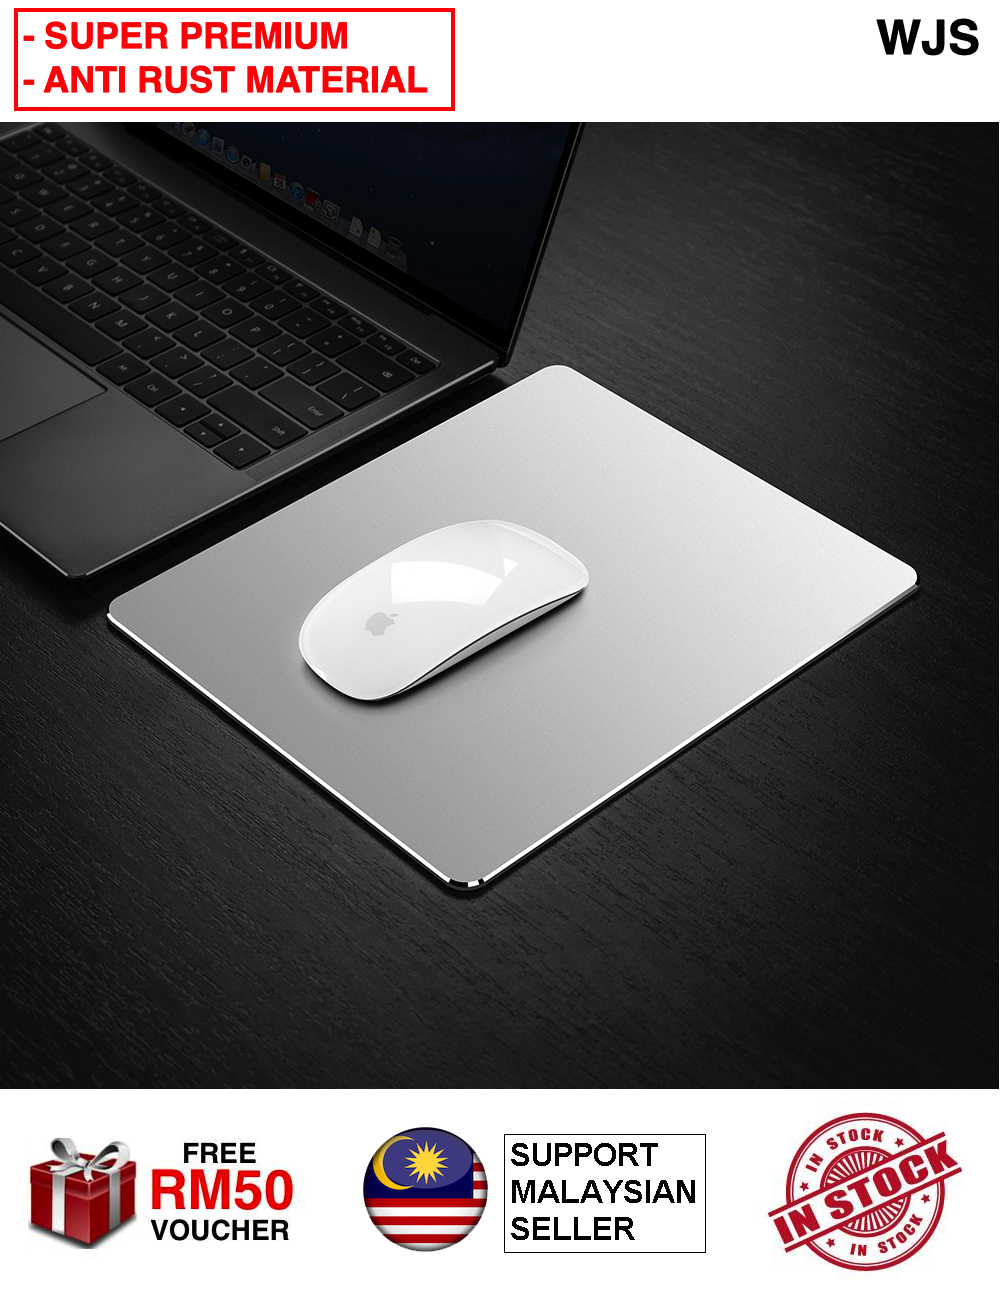 (SUPER PREMIUM MATERIAL) WJS Anti Rust Metal Aluminium Mouse Pad Mat Hard Smooth Magic Thin Mousepad Double Sided Macbook Mousepad Mac Book Mousepad Magic Mouse Pad Waterproof Fast and Accurate Control for Office Home BLACK SILVER ROSE GOLD [FREE RM 50 VO